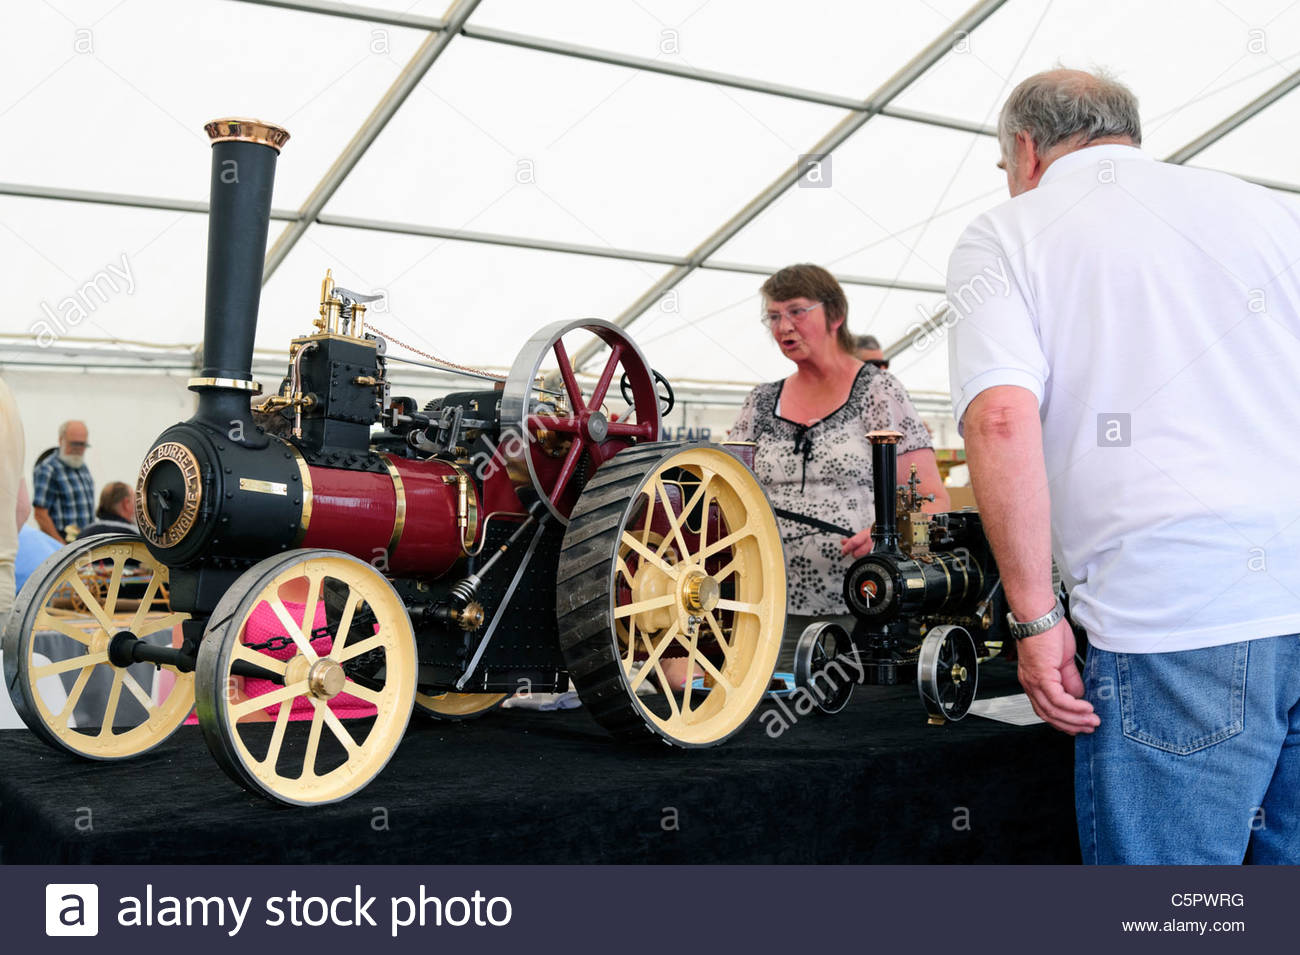 People looking at model steam engines, at Welland Steam Rally 2011, England, UK. - Stock Image